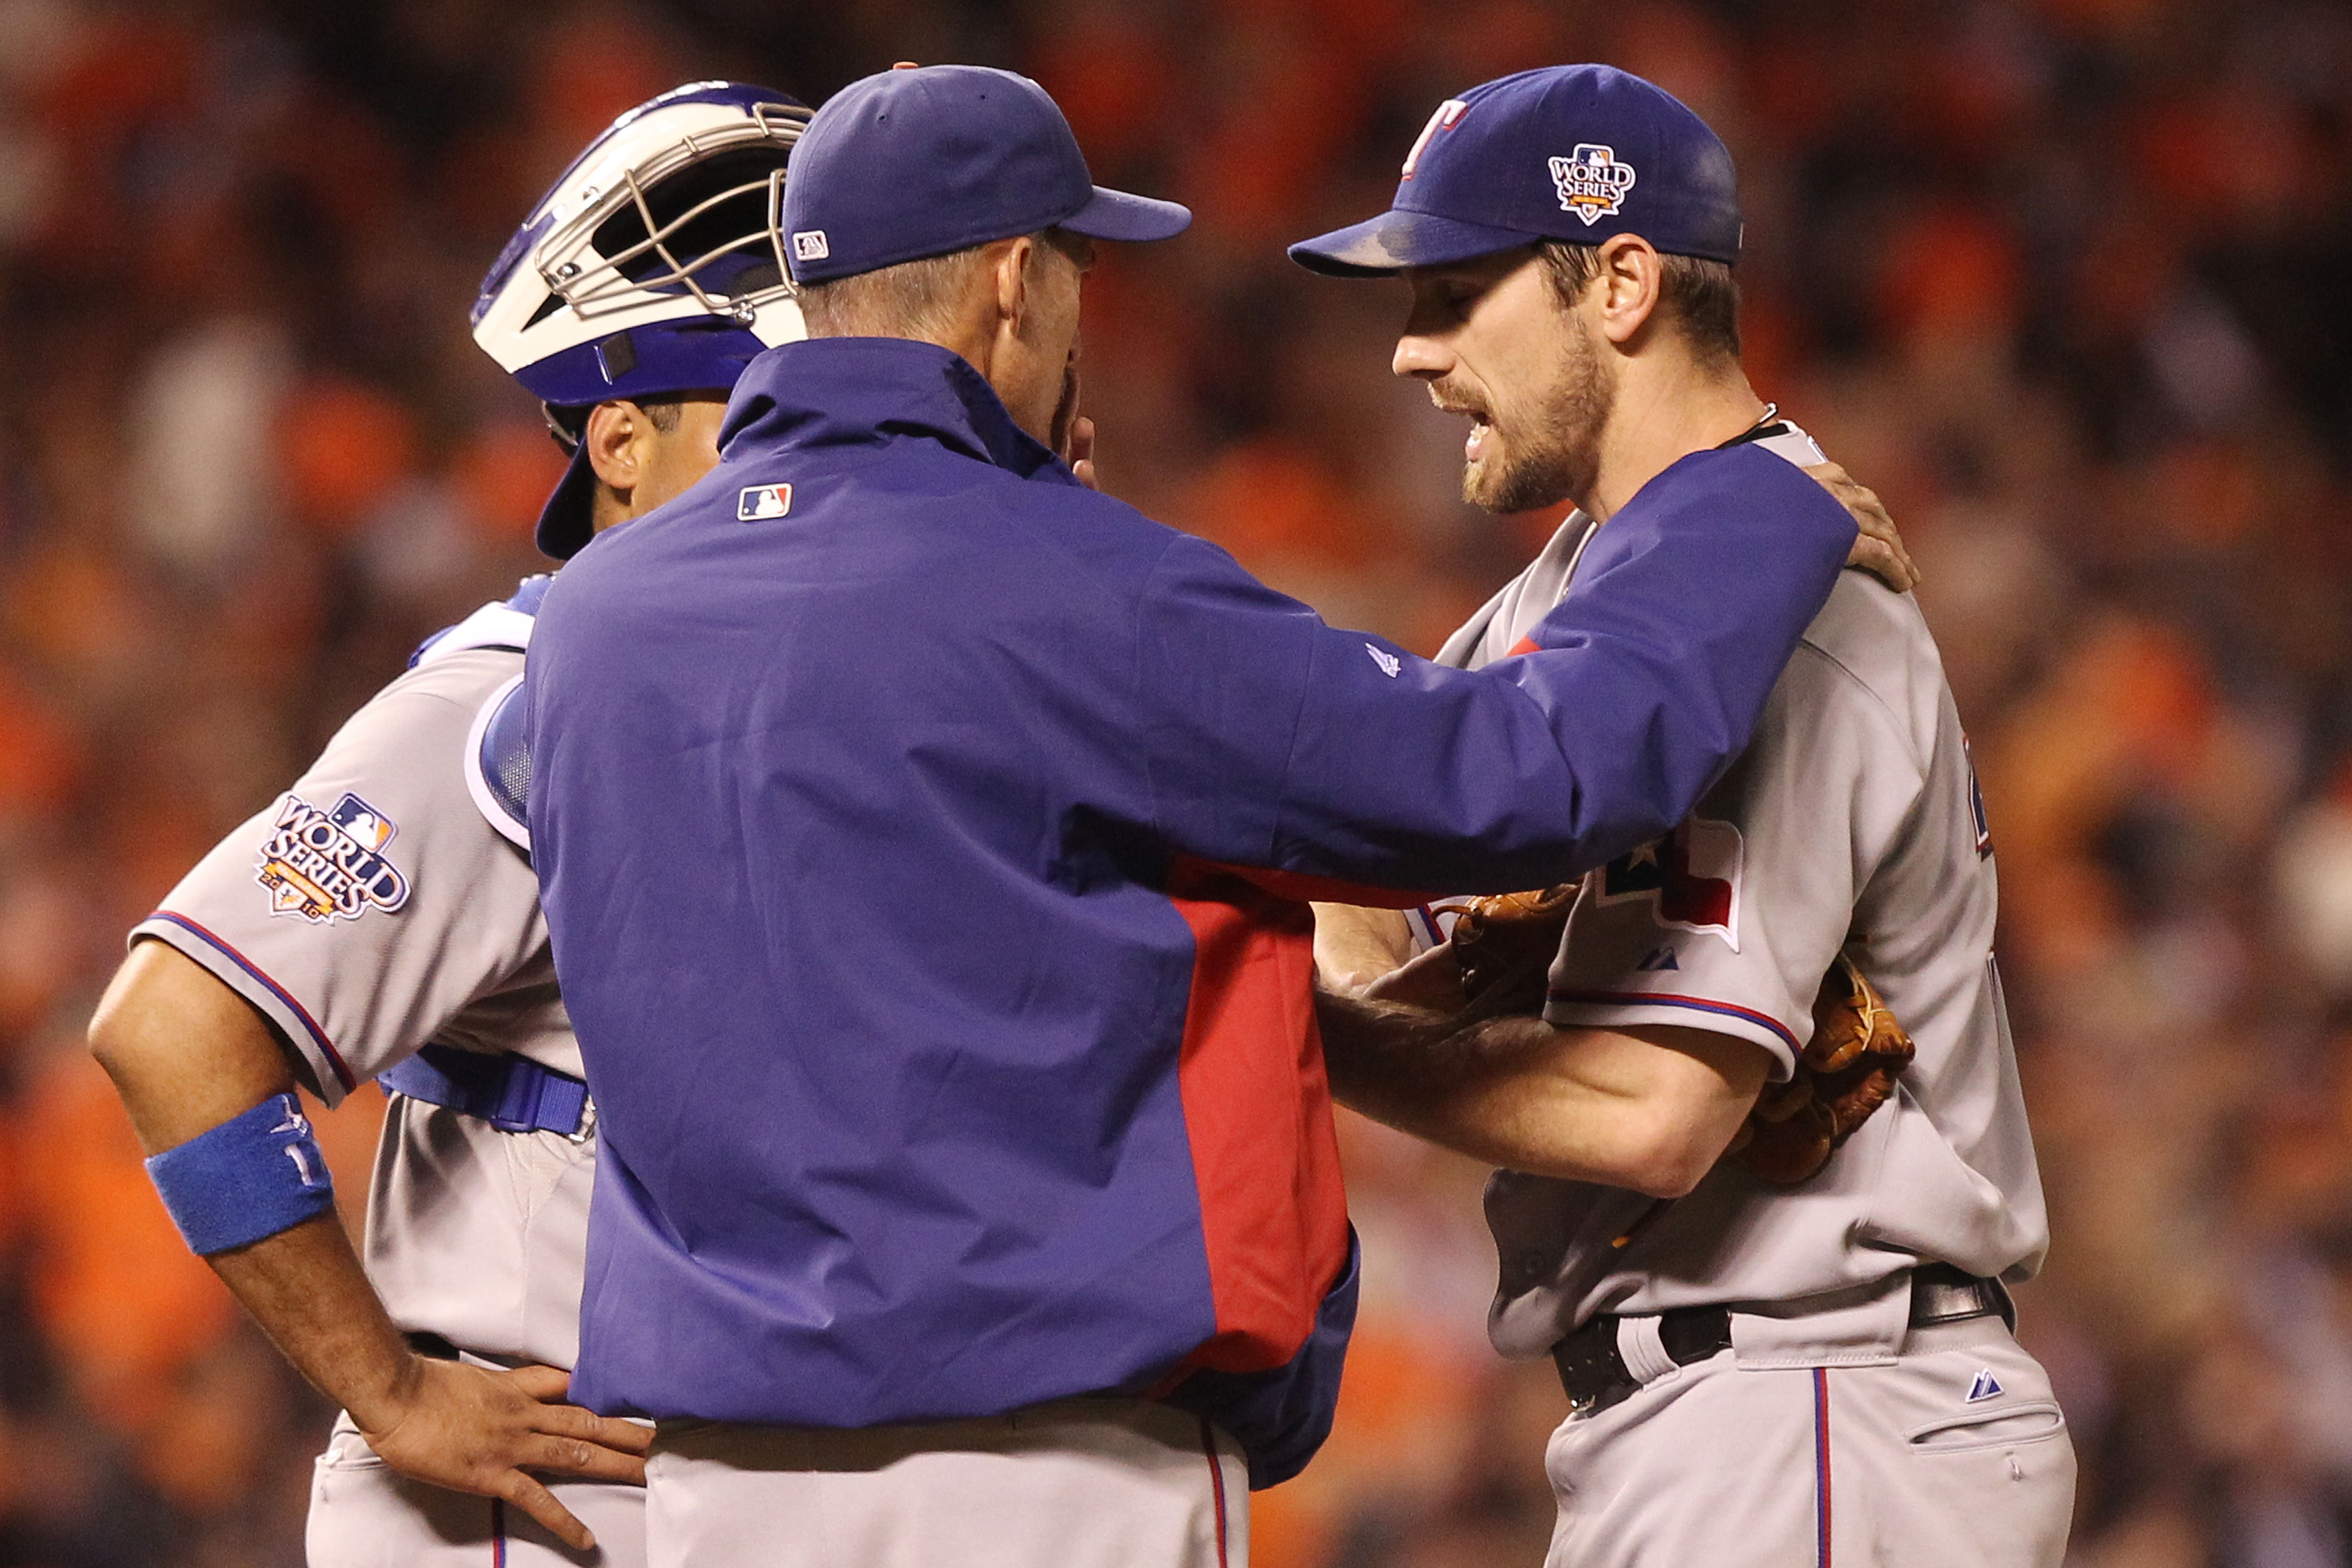 SAN FRANCISCO - OCTOBER 27:  Pitching coach Mike Maddux talks with Cliff Lee #33 of the Texas Rangers against the San Francisco Giants in Game One of the 2010 MLB World Series at AT&T Park on October 27, 2010 in San Francisco, California.  (Photo by Jed J